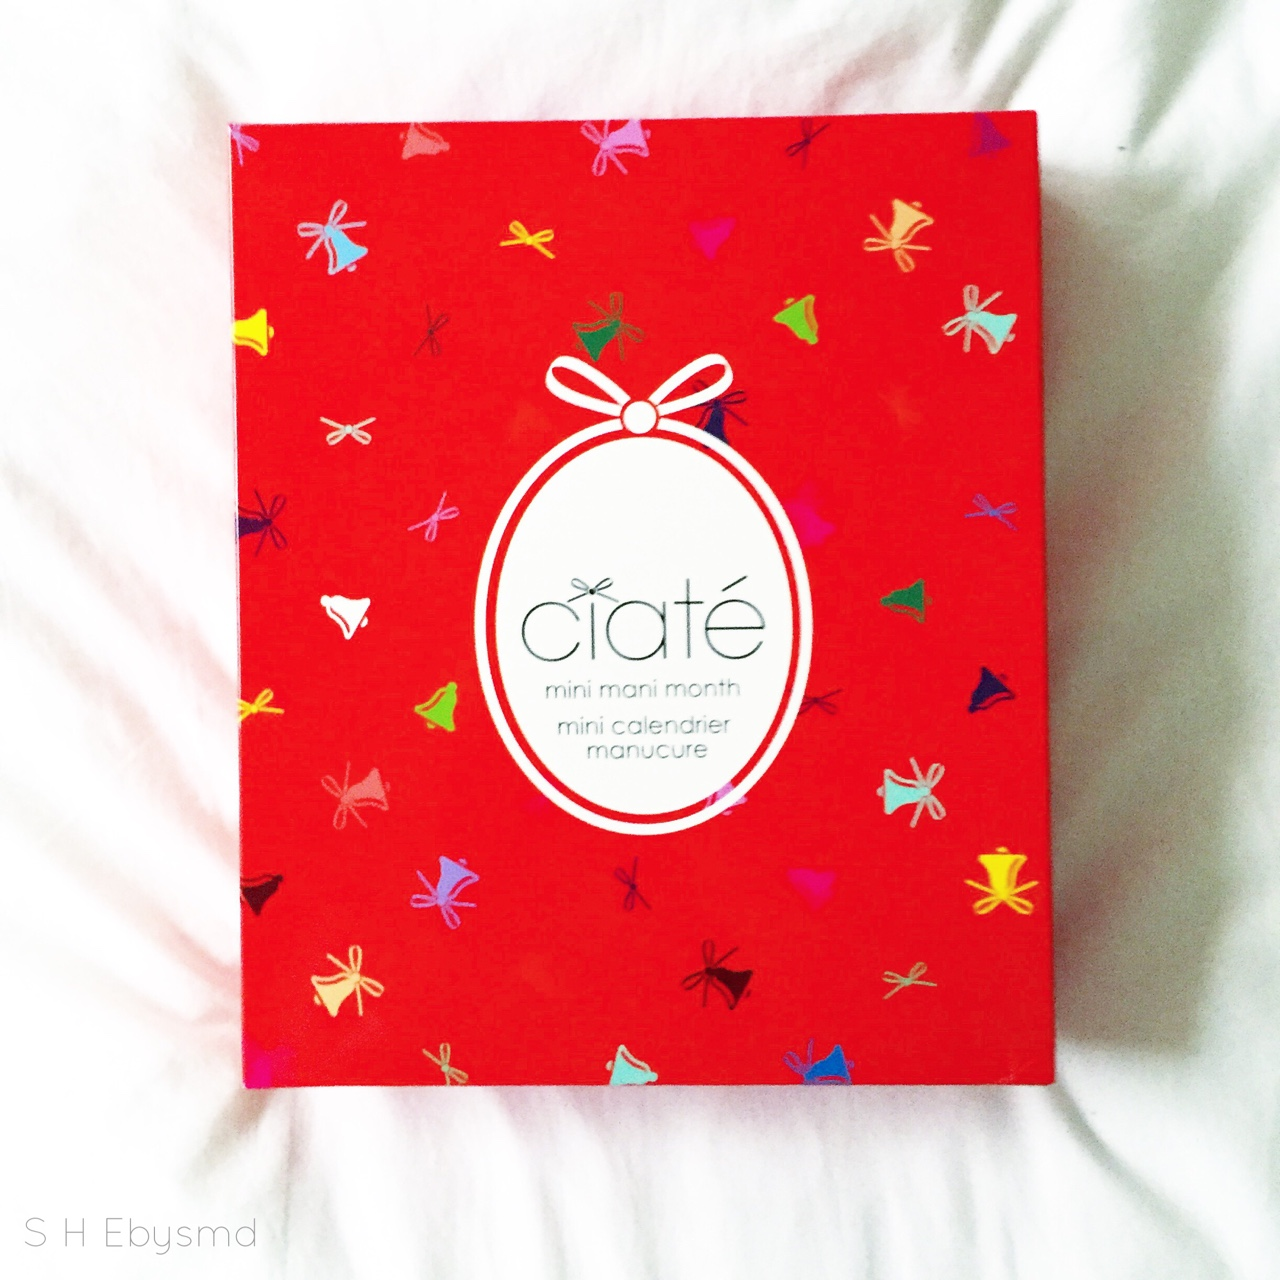 Mini Mani Month Ciaté Nail Polish Calendar-Can't wait to get a New Colour Everyday! //SHE